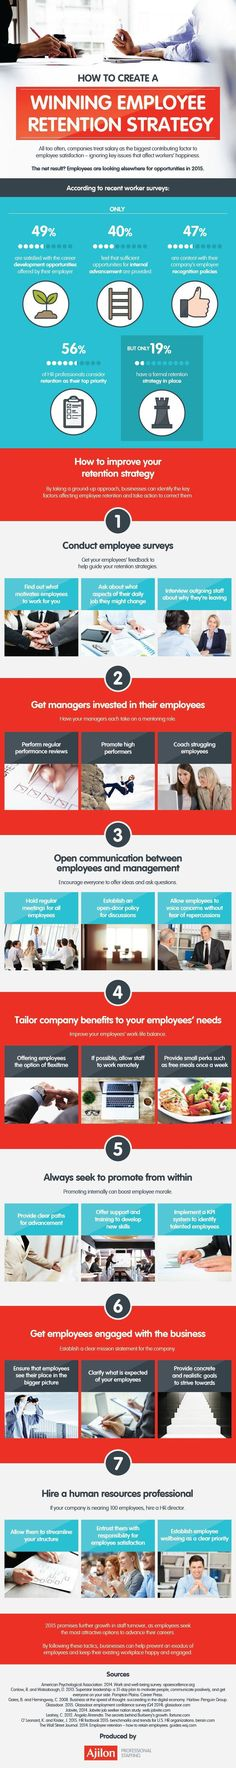 how to retain staff